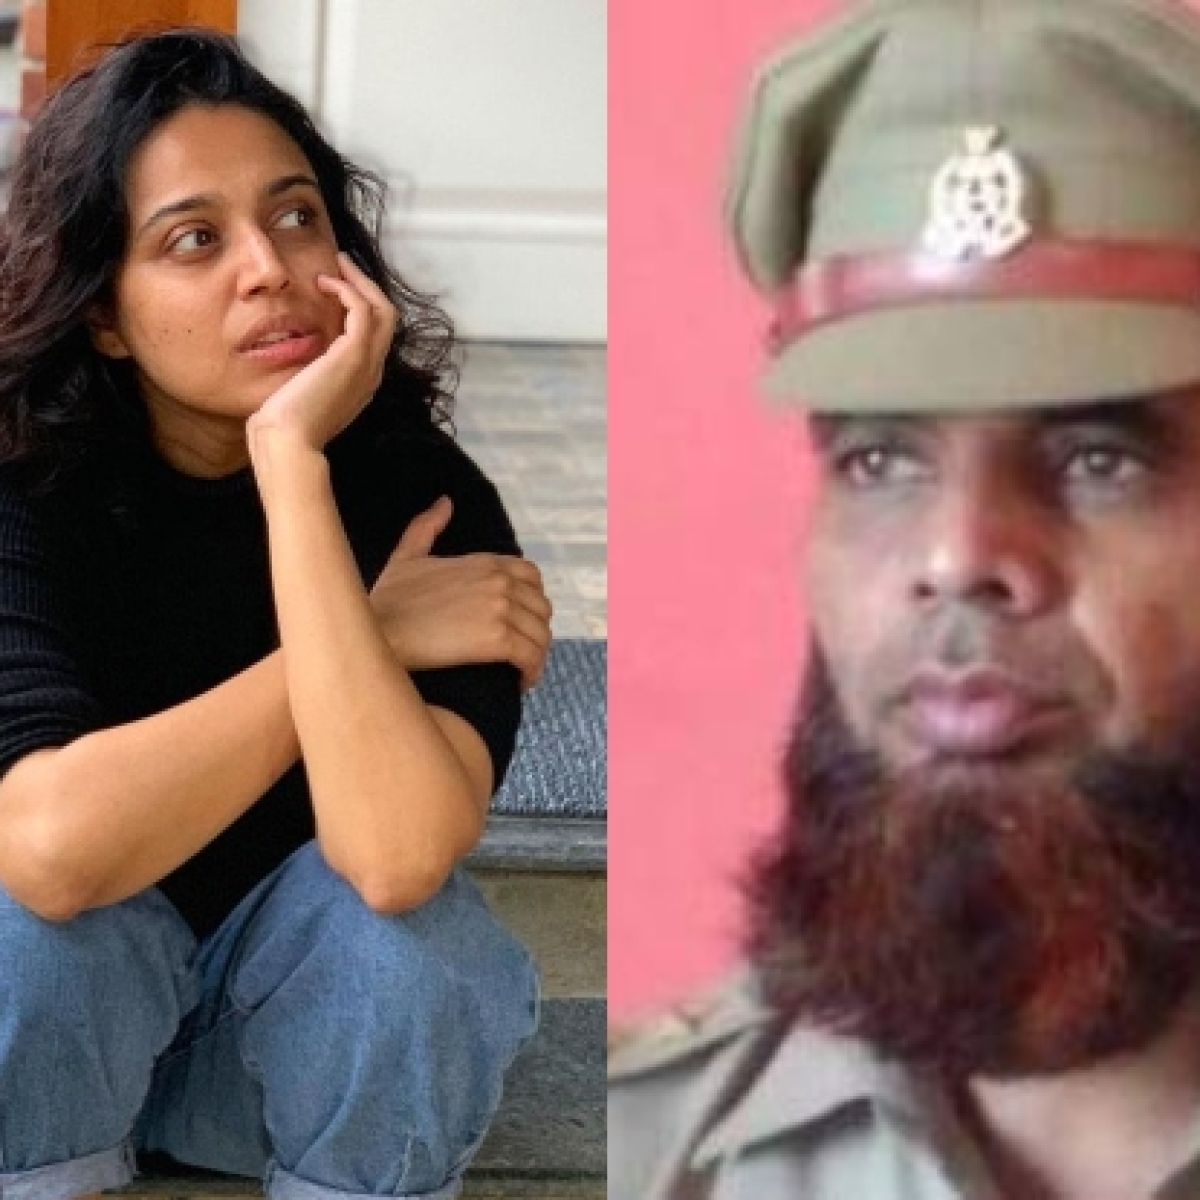 'Doesn't seem like a case of discrimination': Swara Bhasker on Muslim cop being suspended over a beard